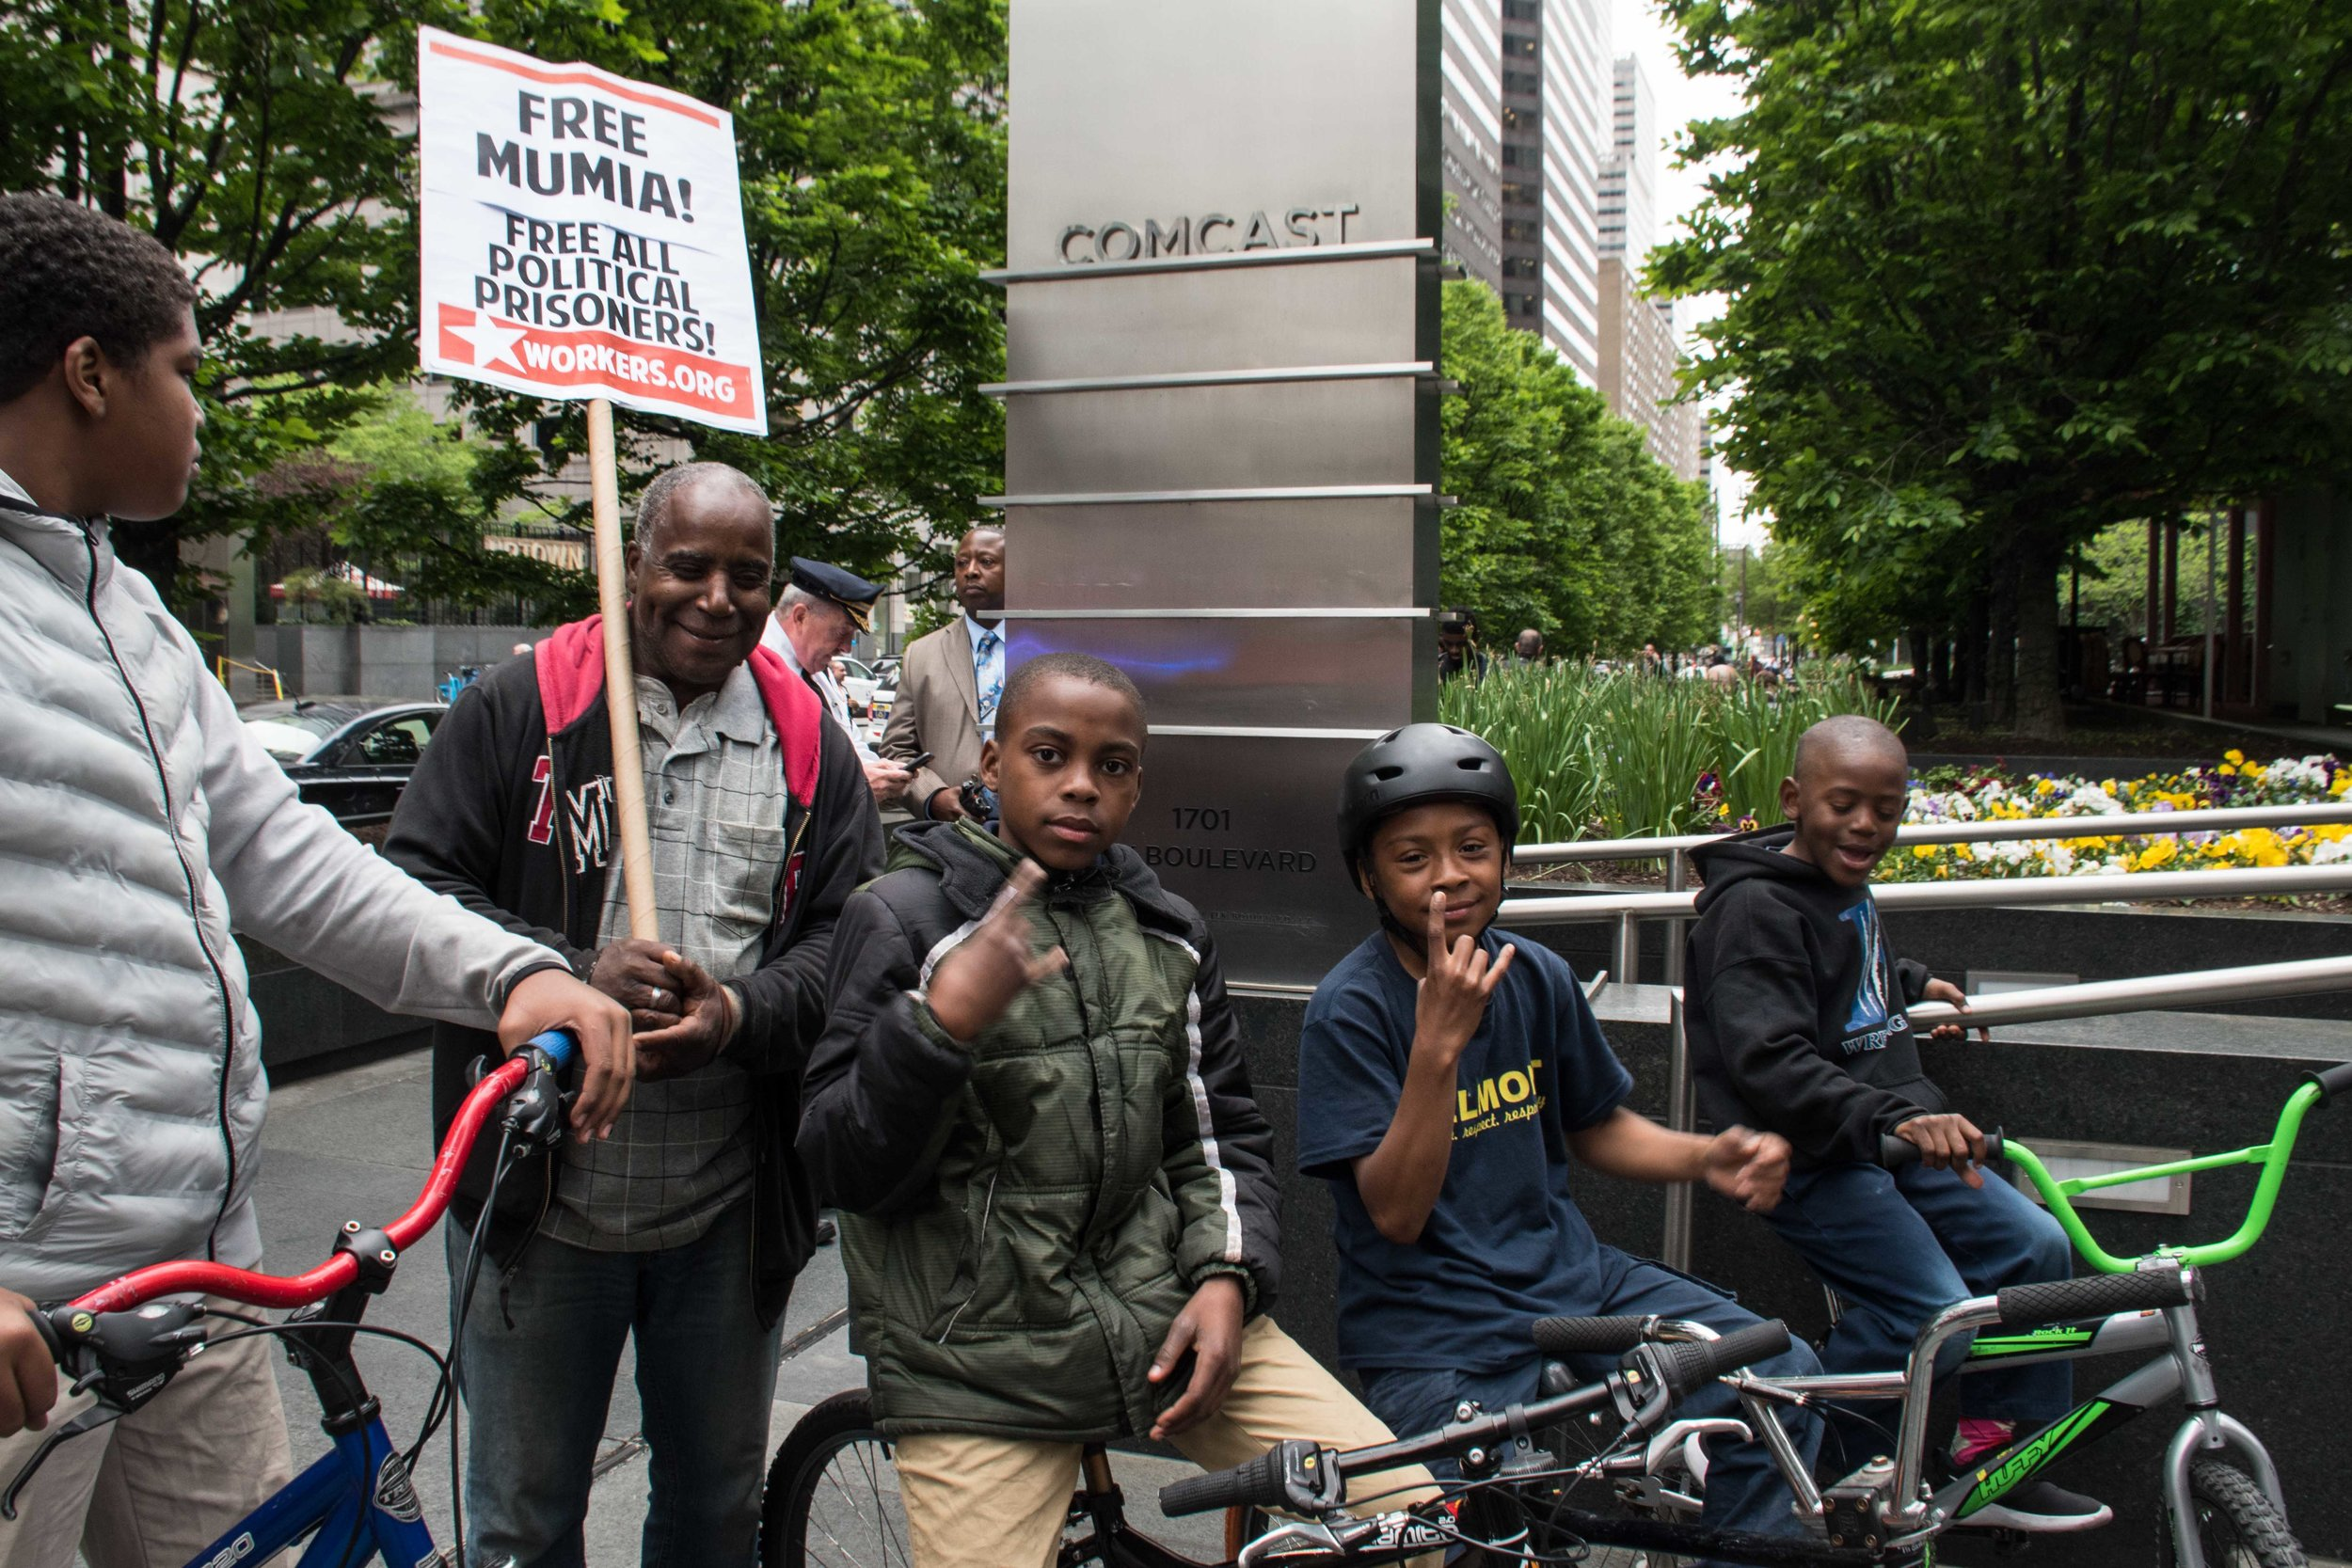 Young bikers express their solidarity as May 1st International Workers Day marchers stop at Comcast to protest against their anti-Immigrant policies. Photo credit: Joe Piette